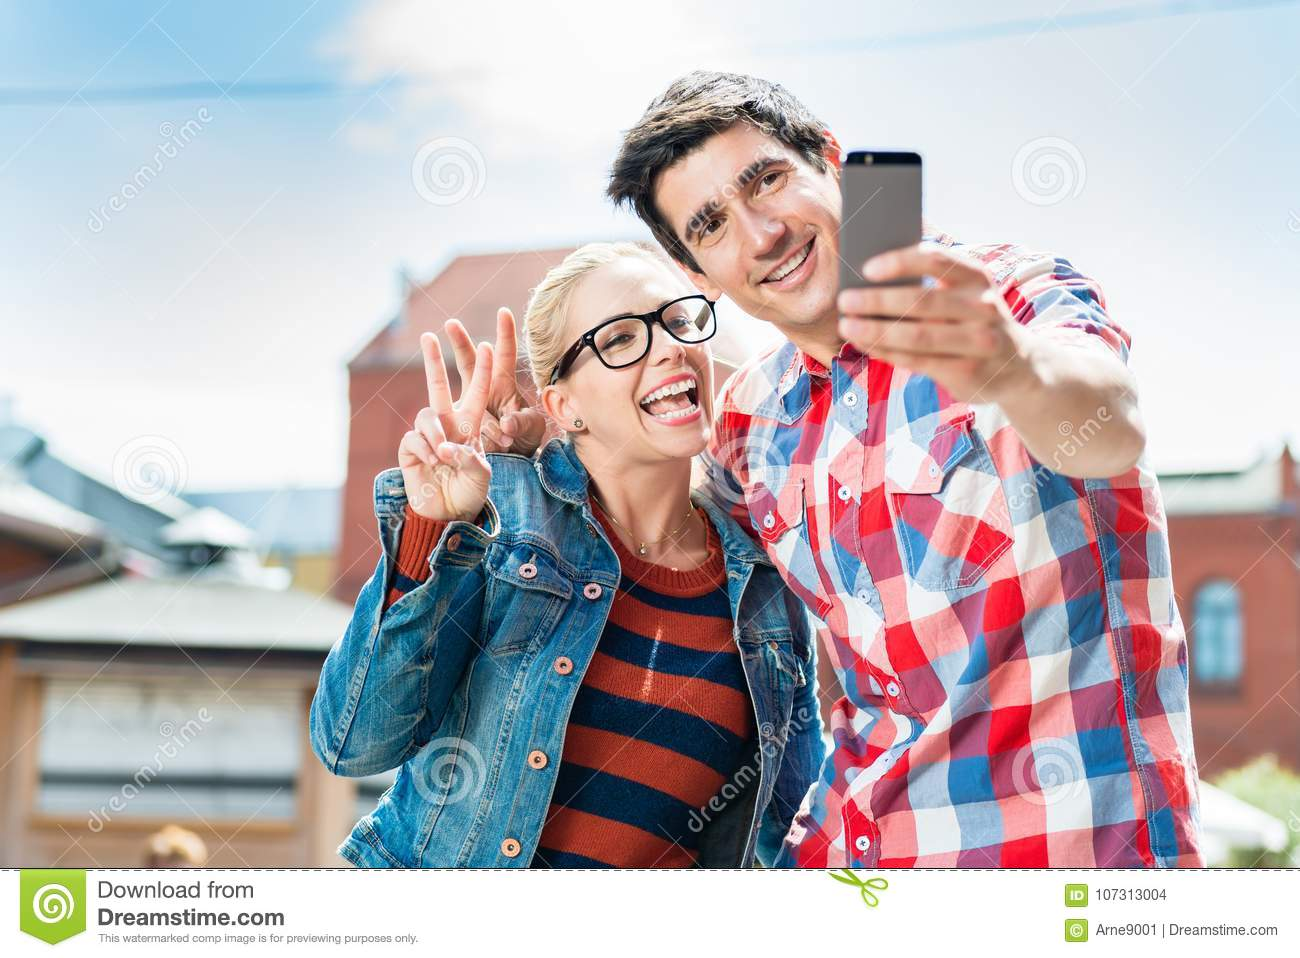 Tourist couple taking selfie on rooftop in Berlin